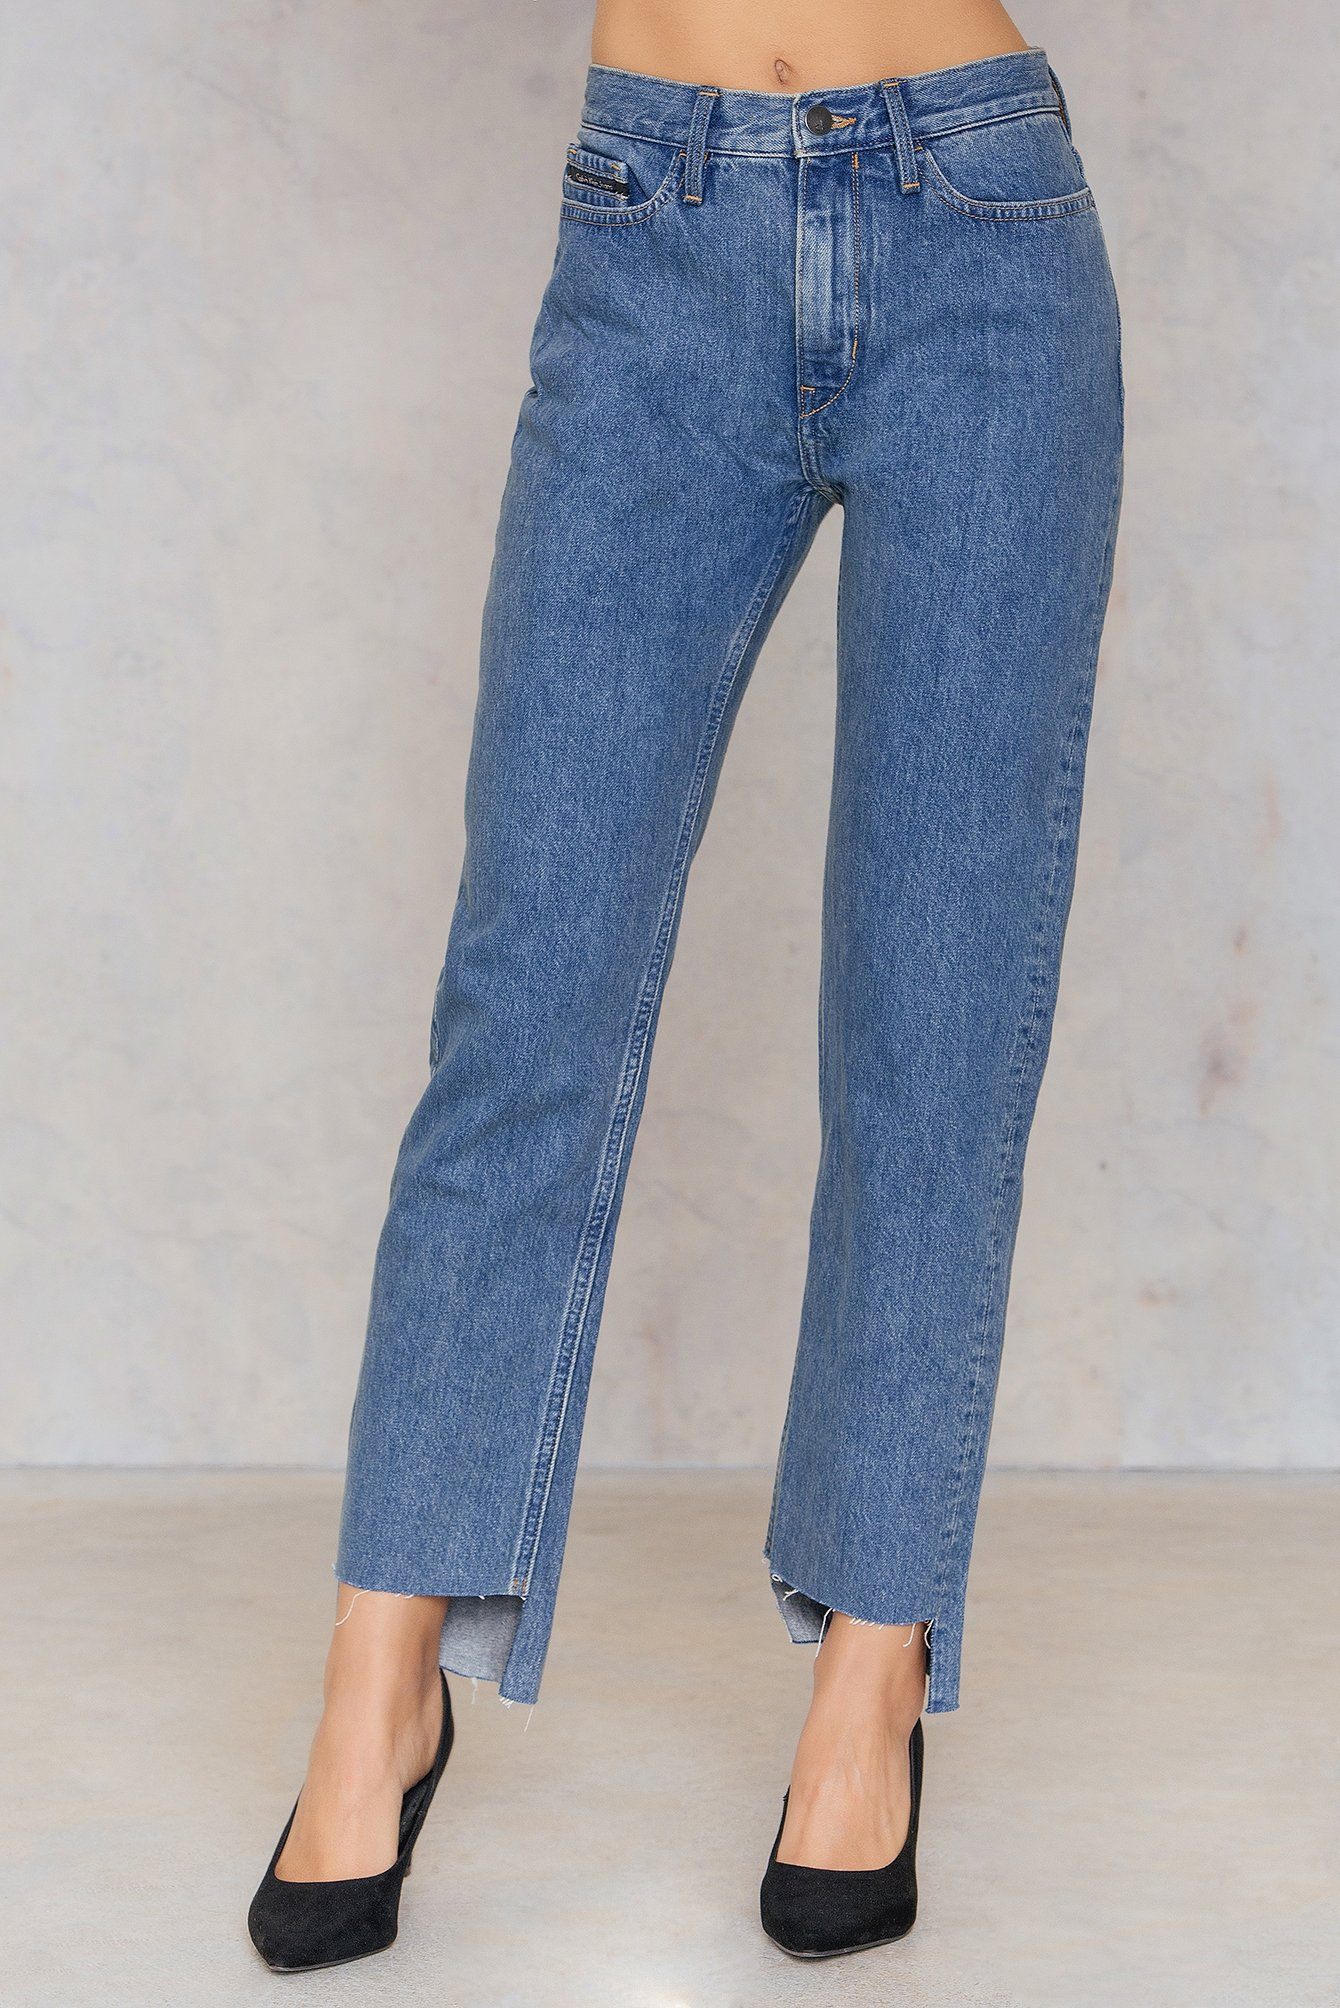 Rugged Blue HR Straight Ankle Step Jeans